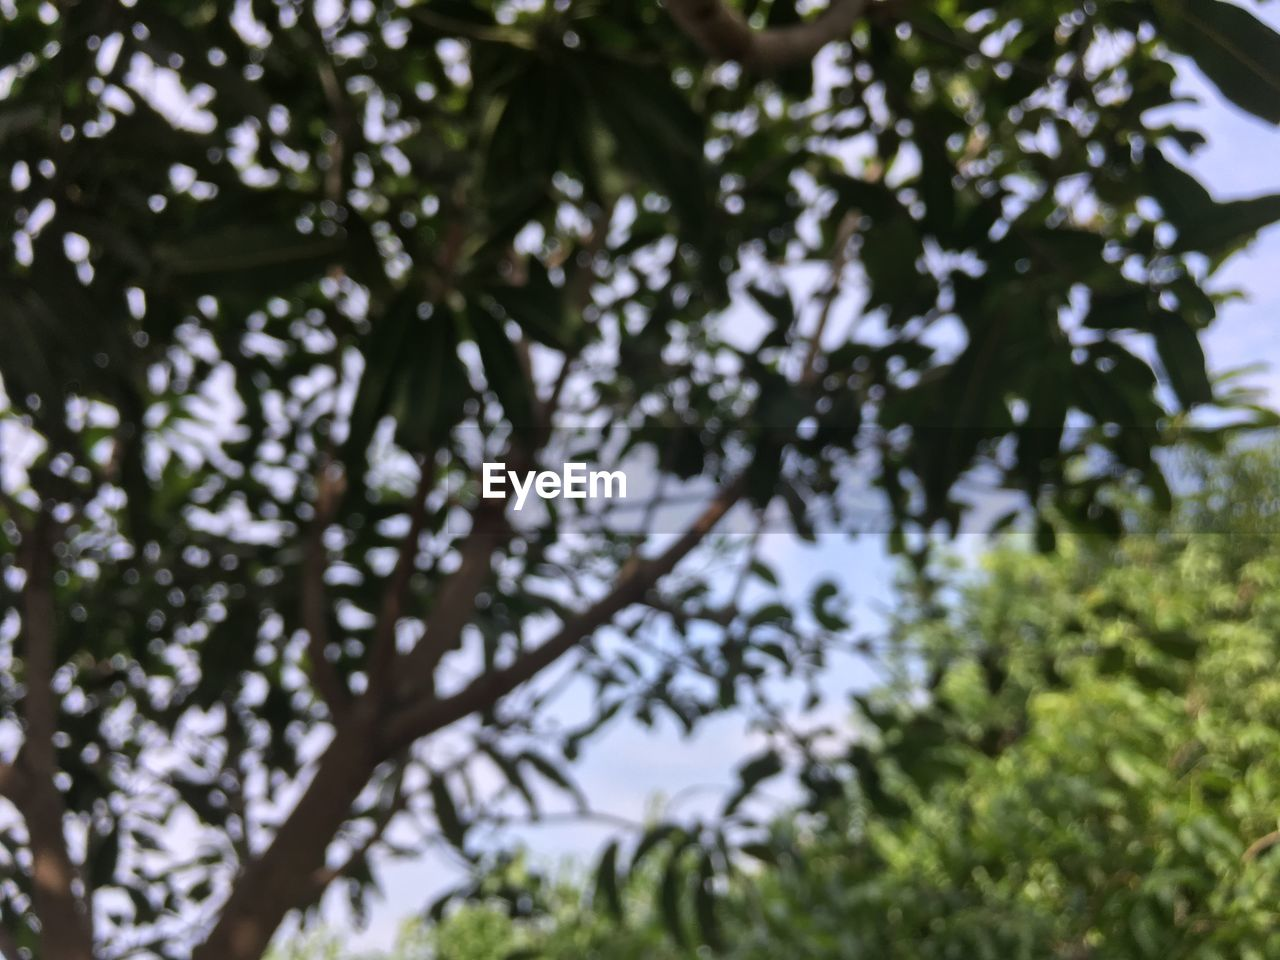 tree, plant, growth, low angle view, branch, beauty in nature, nature, day, no people, selective focus, outdoors, tranquility, land, leaf, green color, plant part, sky, forest, focus on foreground, close-up, tree canopy